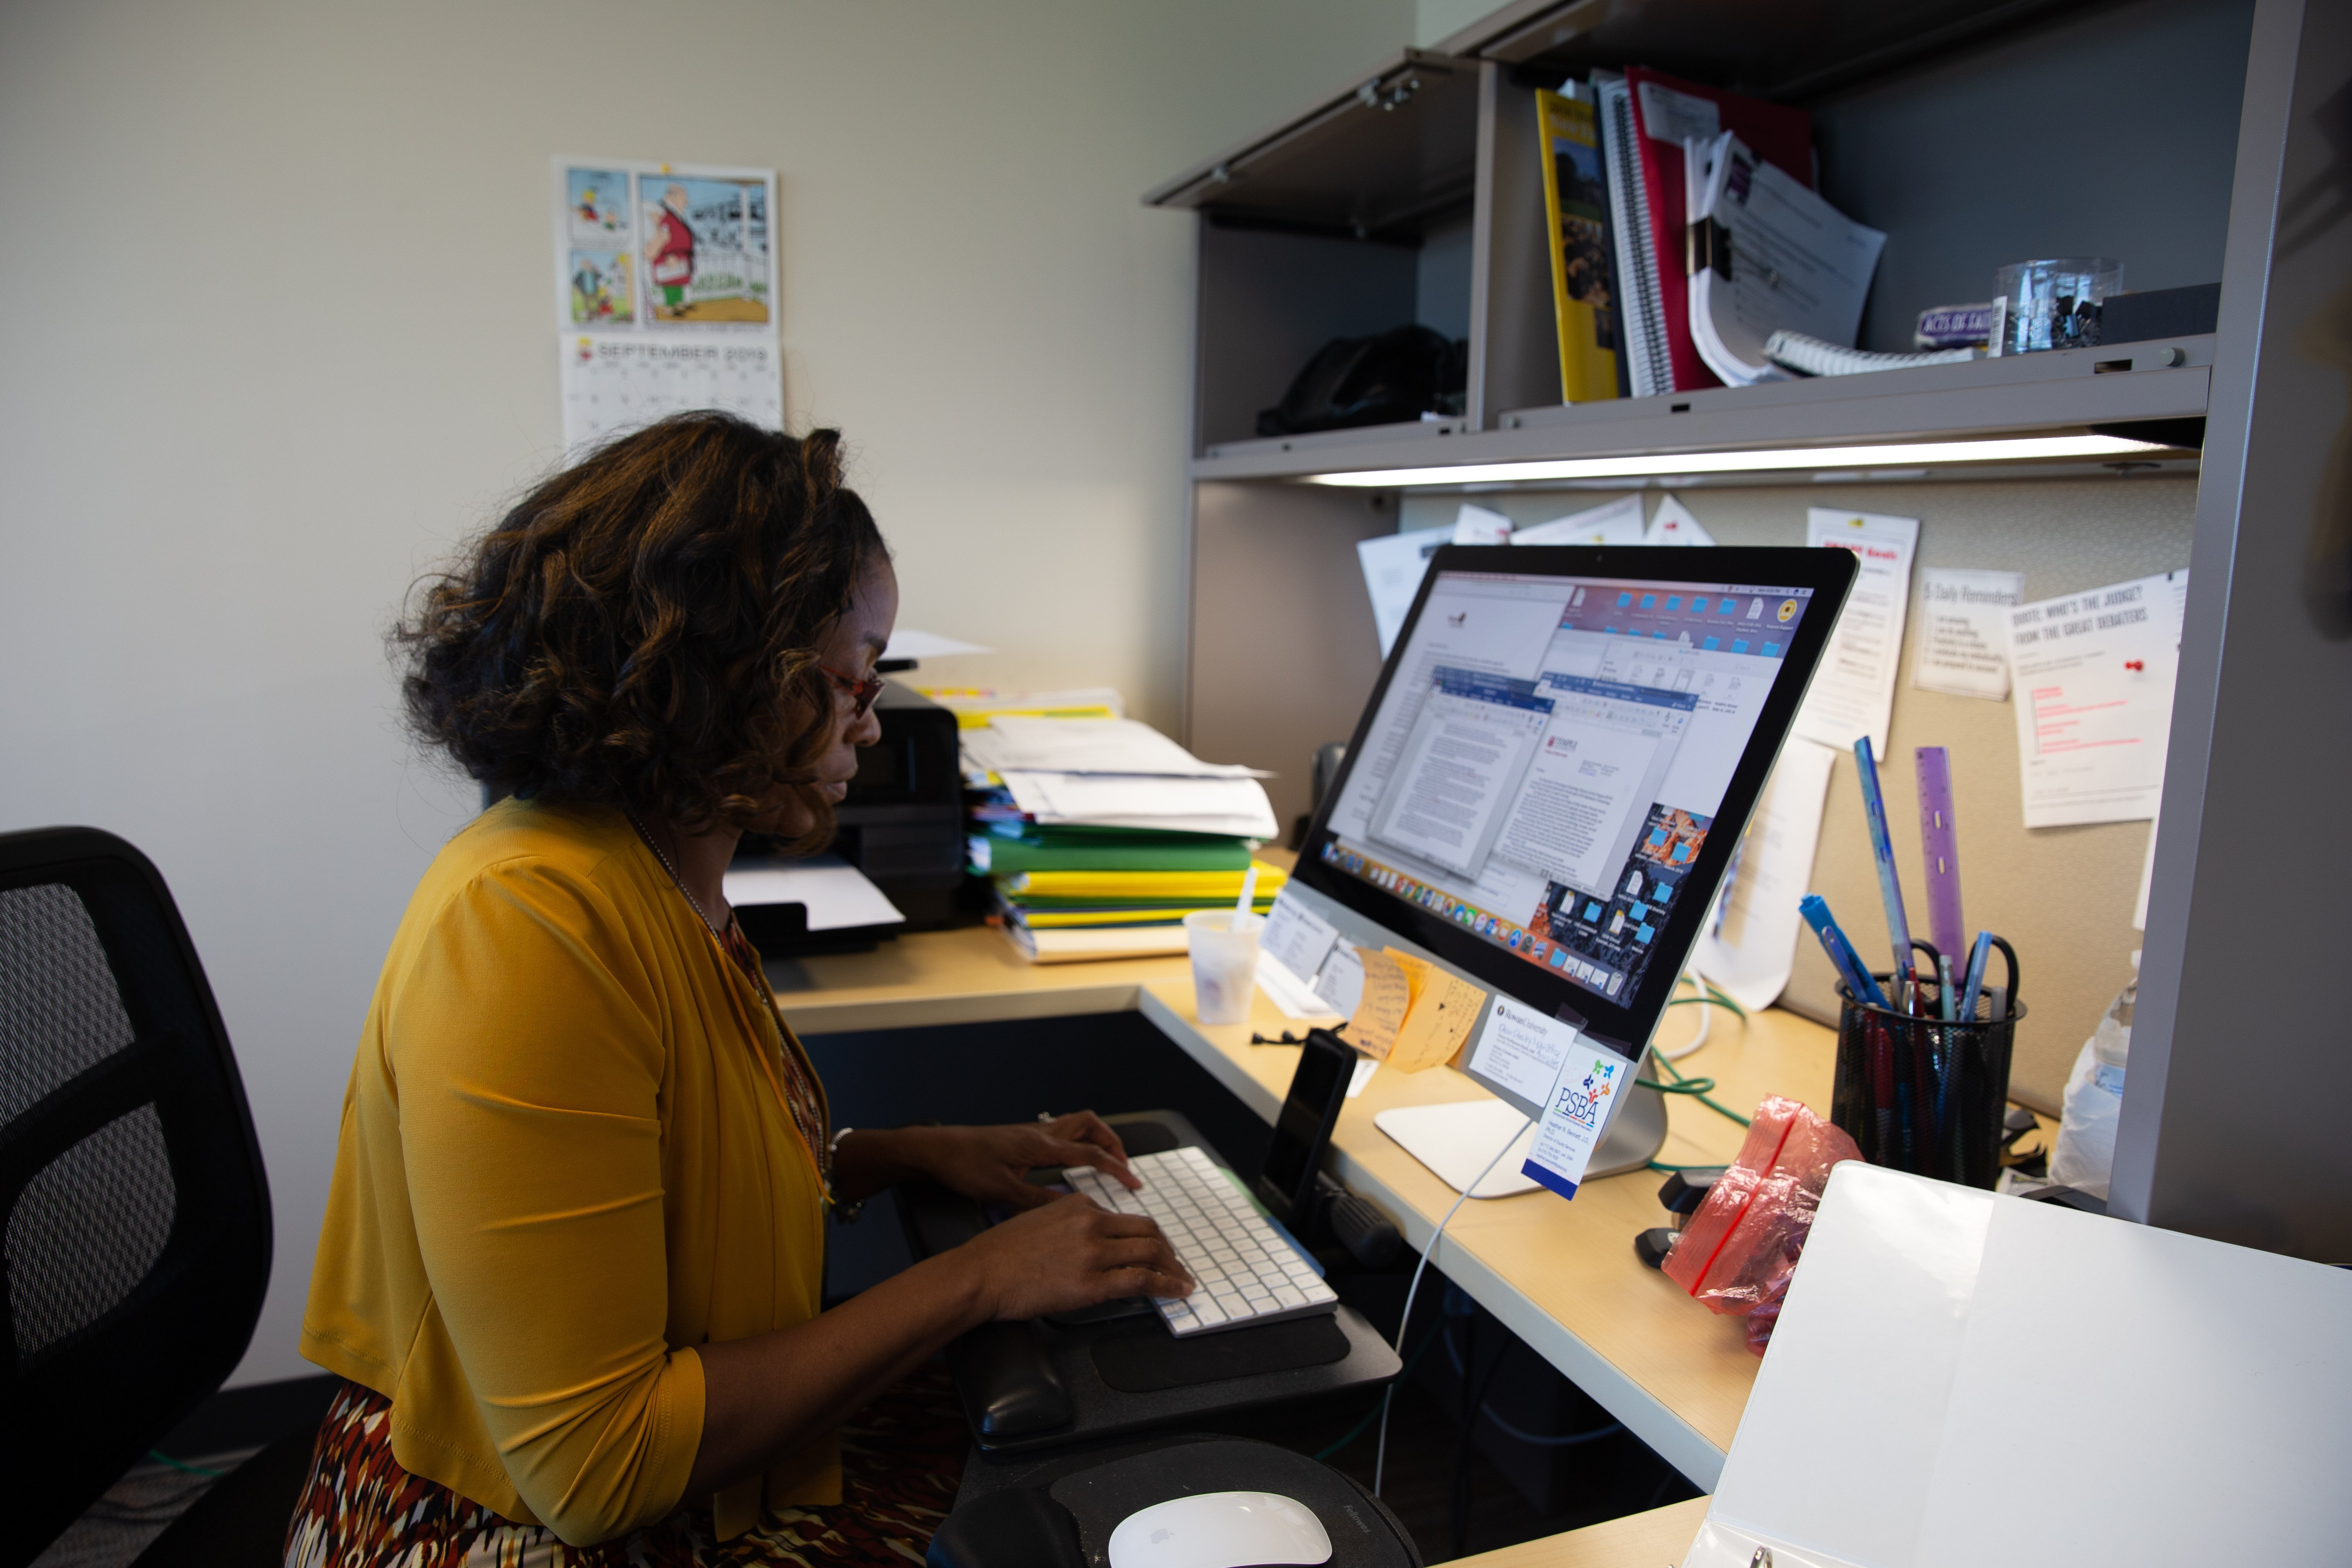 Dr. Angela Beale-Tawfeeq typing at her desk.